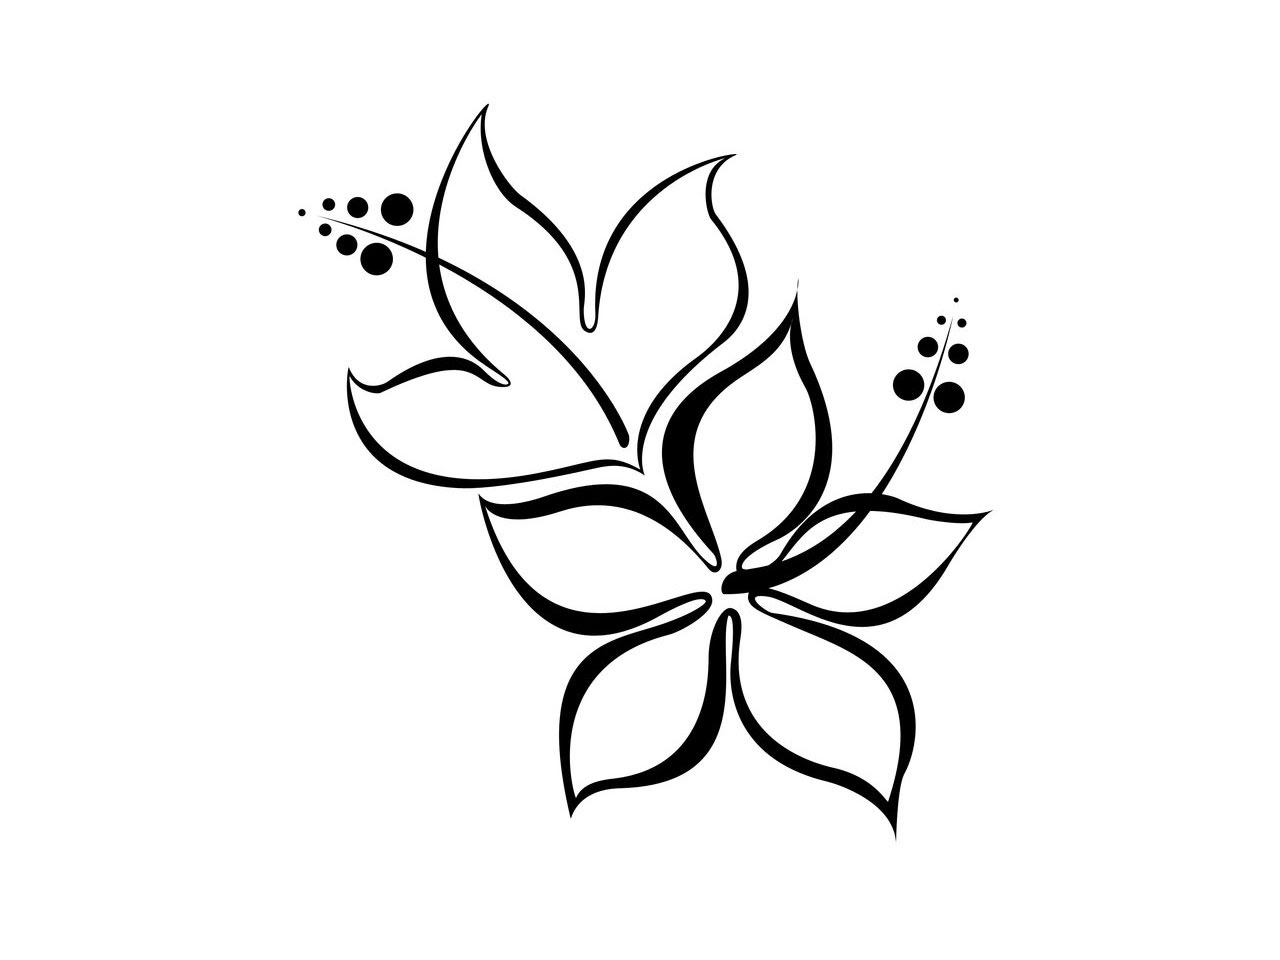 Flower Flower Drawing Images Simple